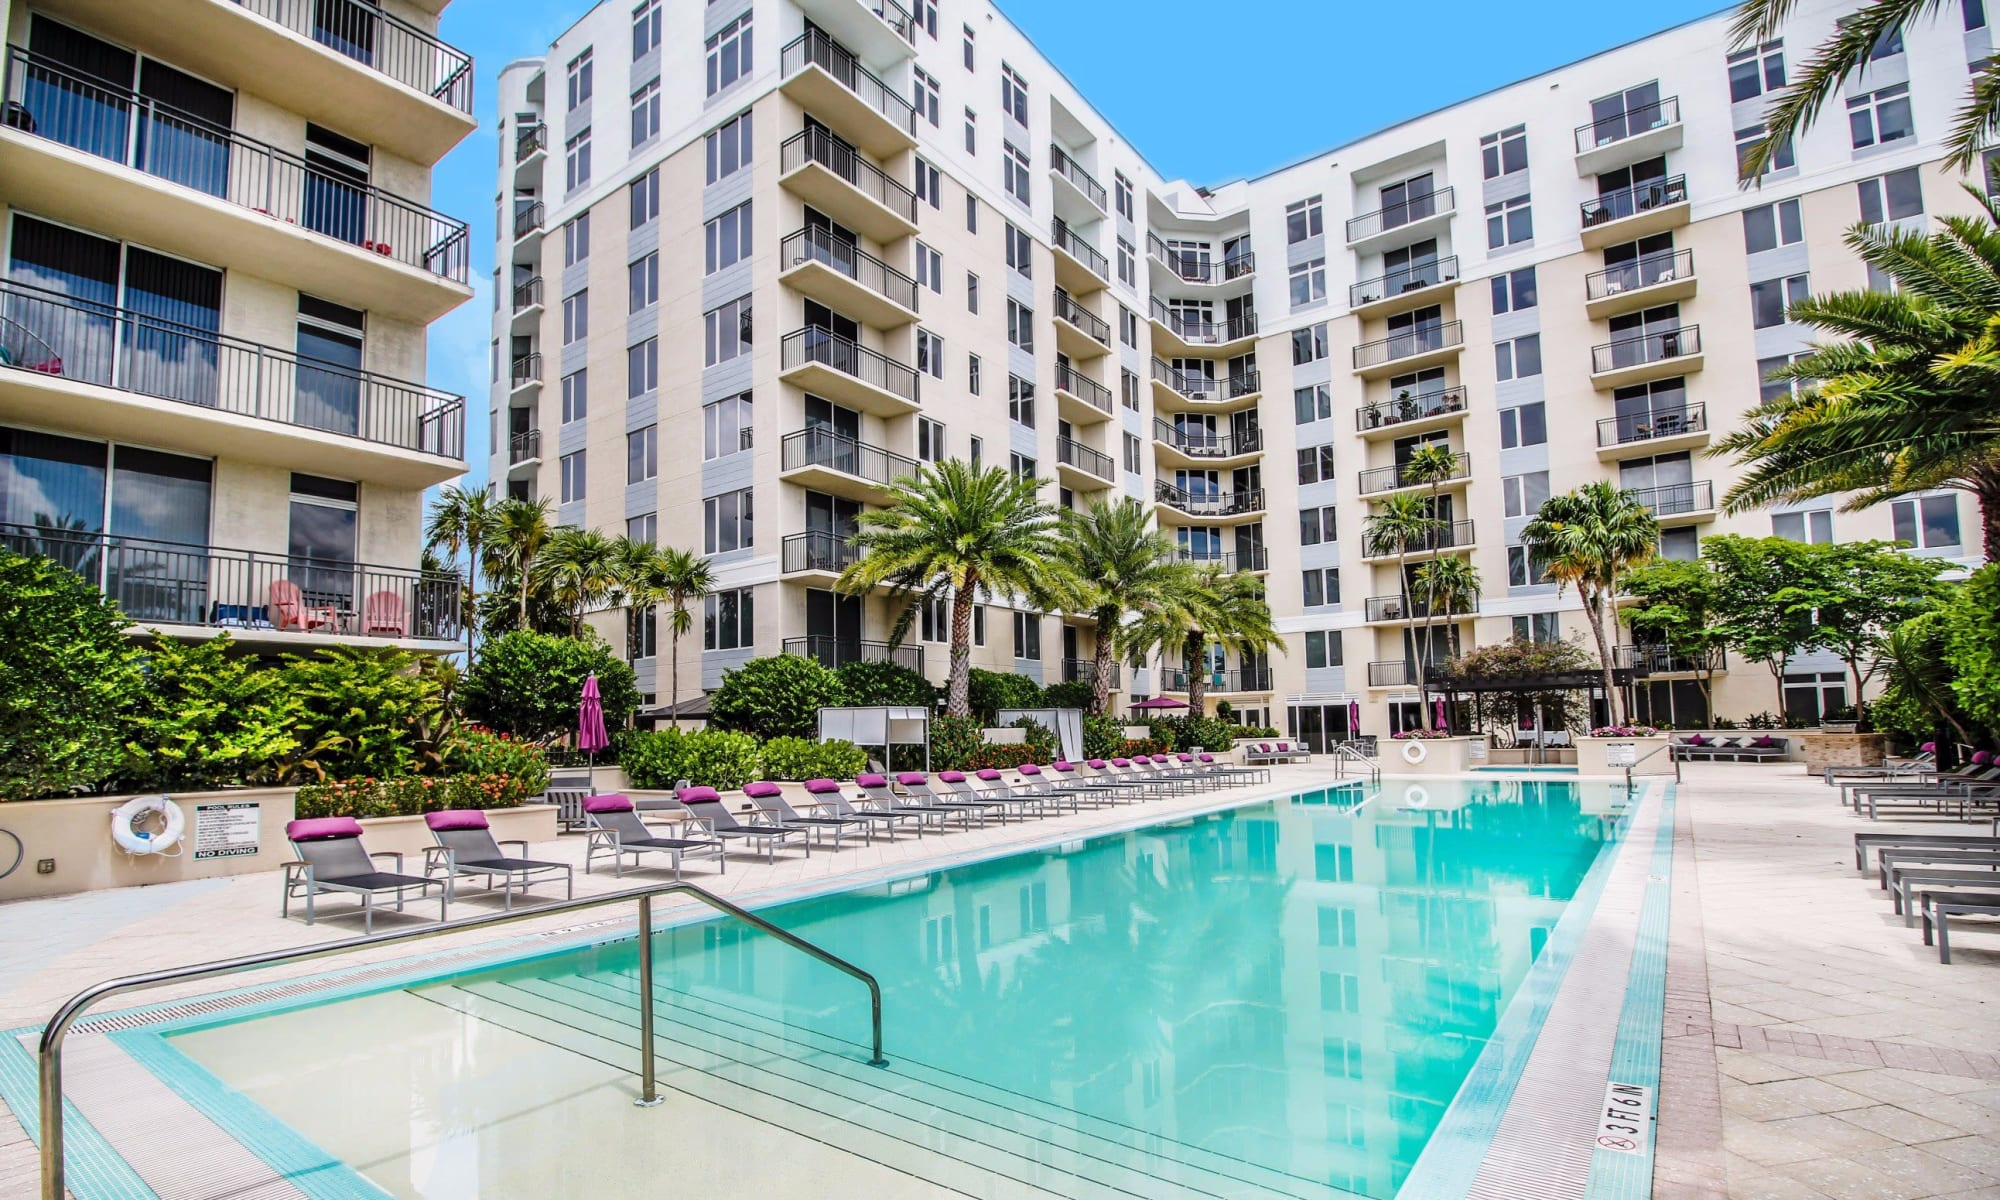 Plantation, FL Apartments for Rent near Davie | Midtown 24